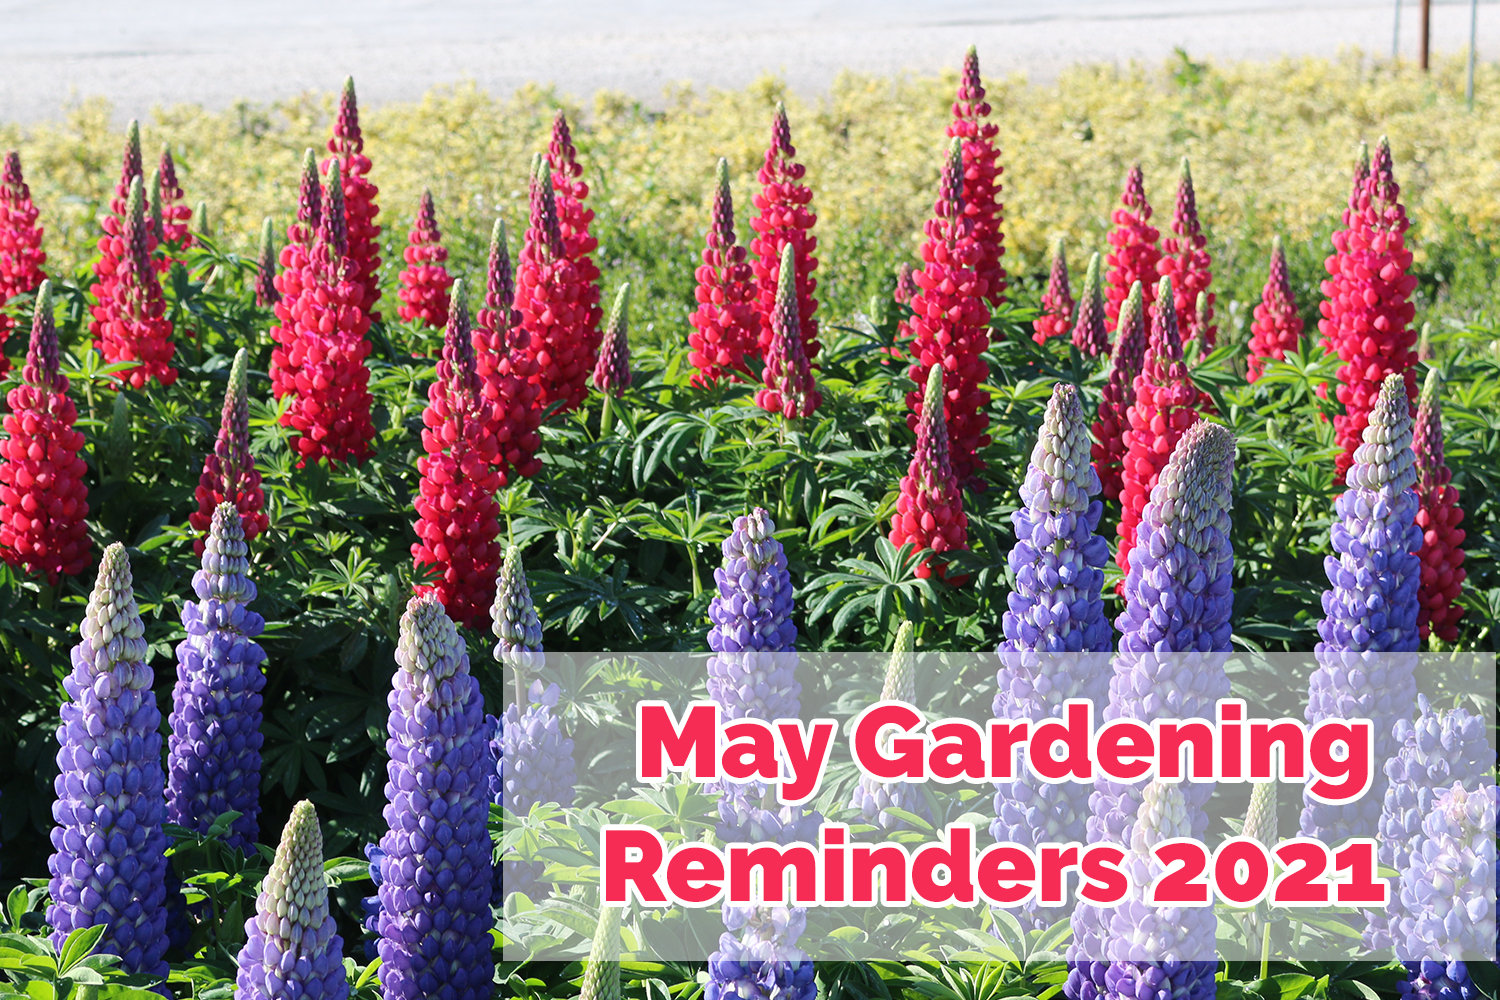 What to do in the garden during May